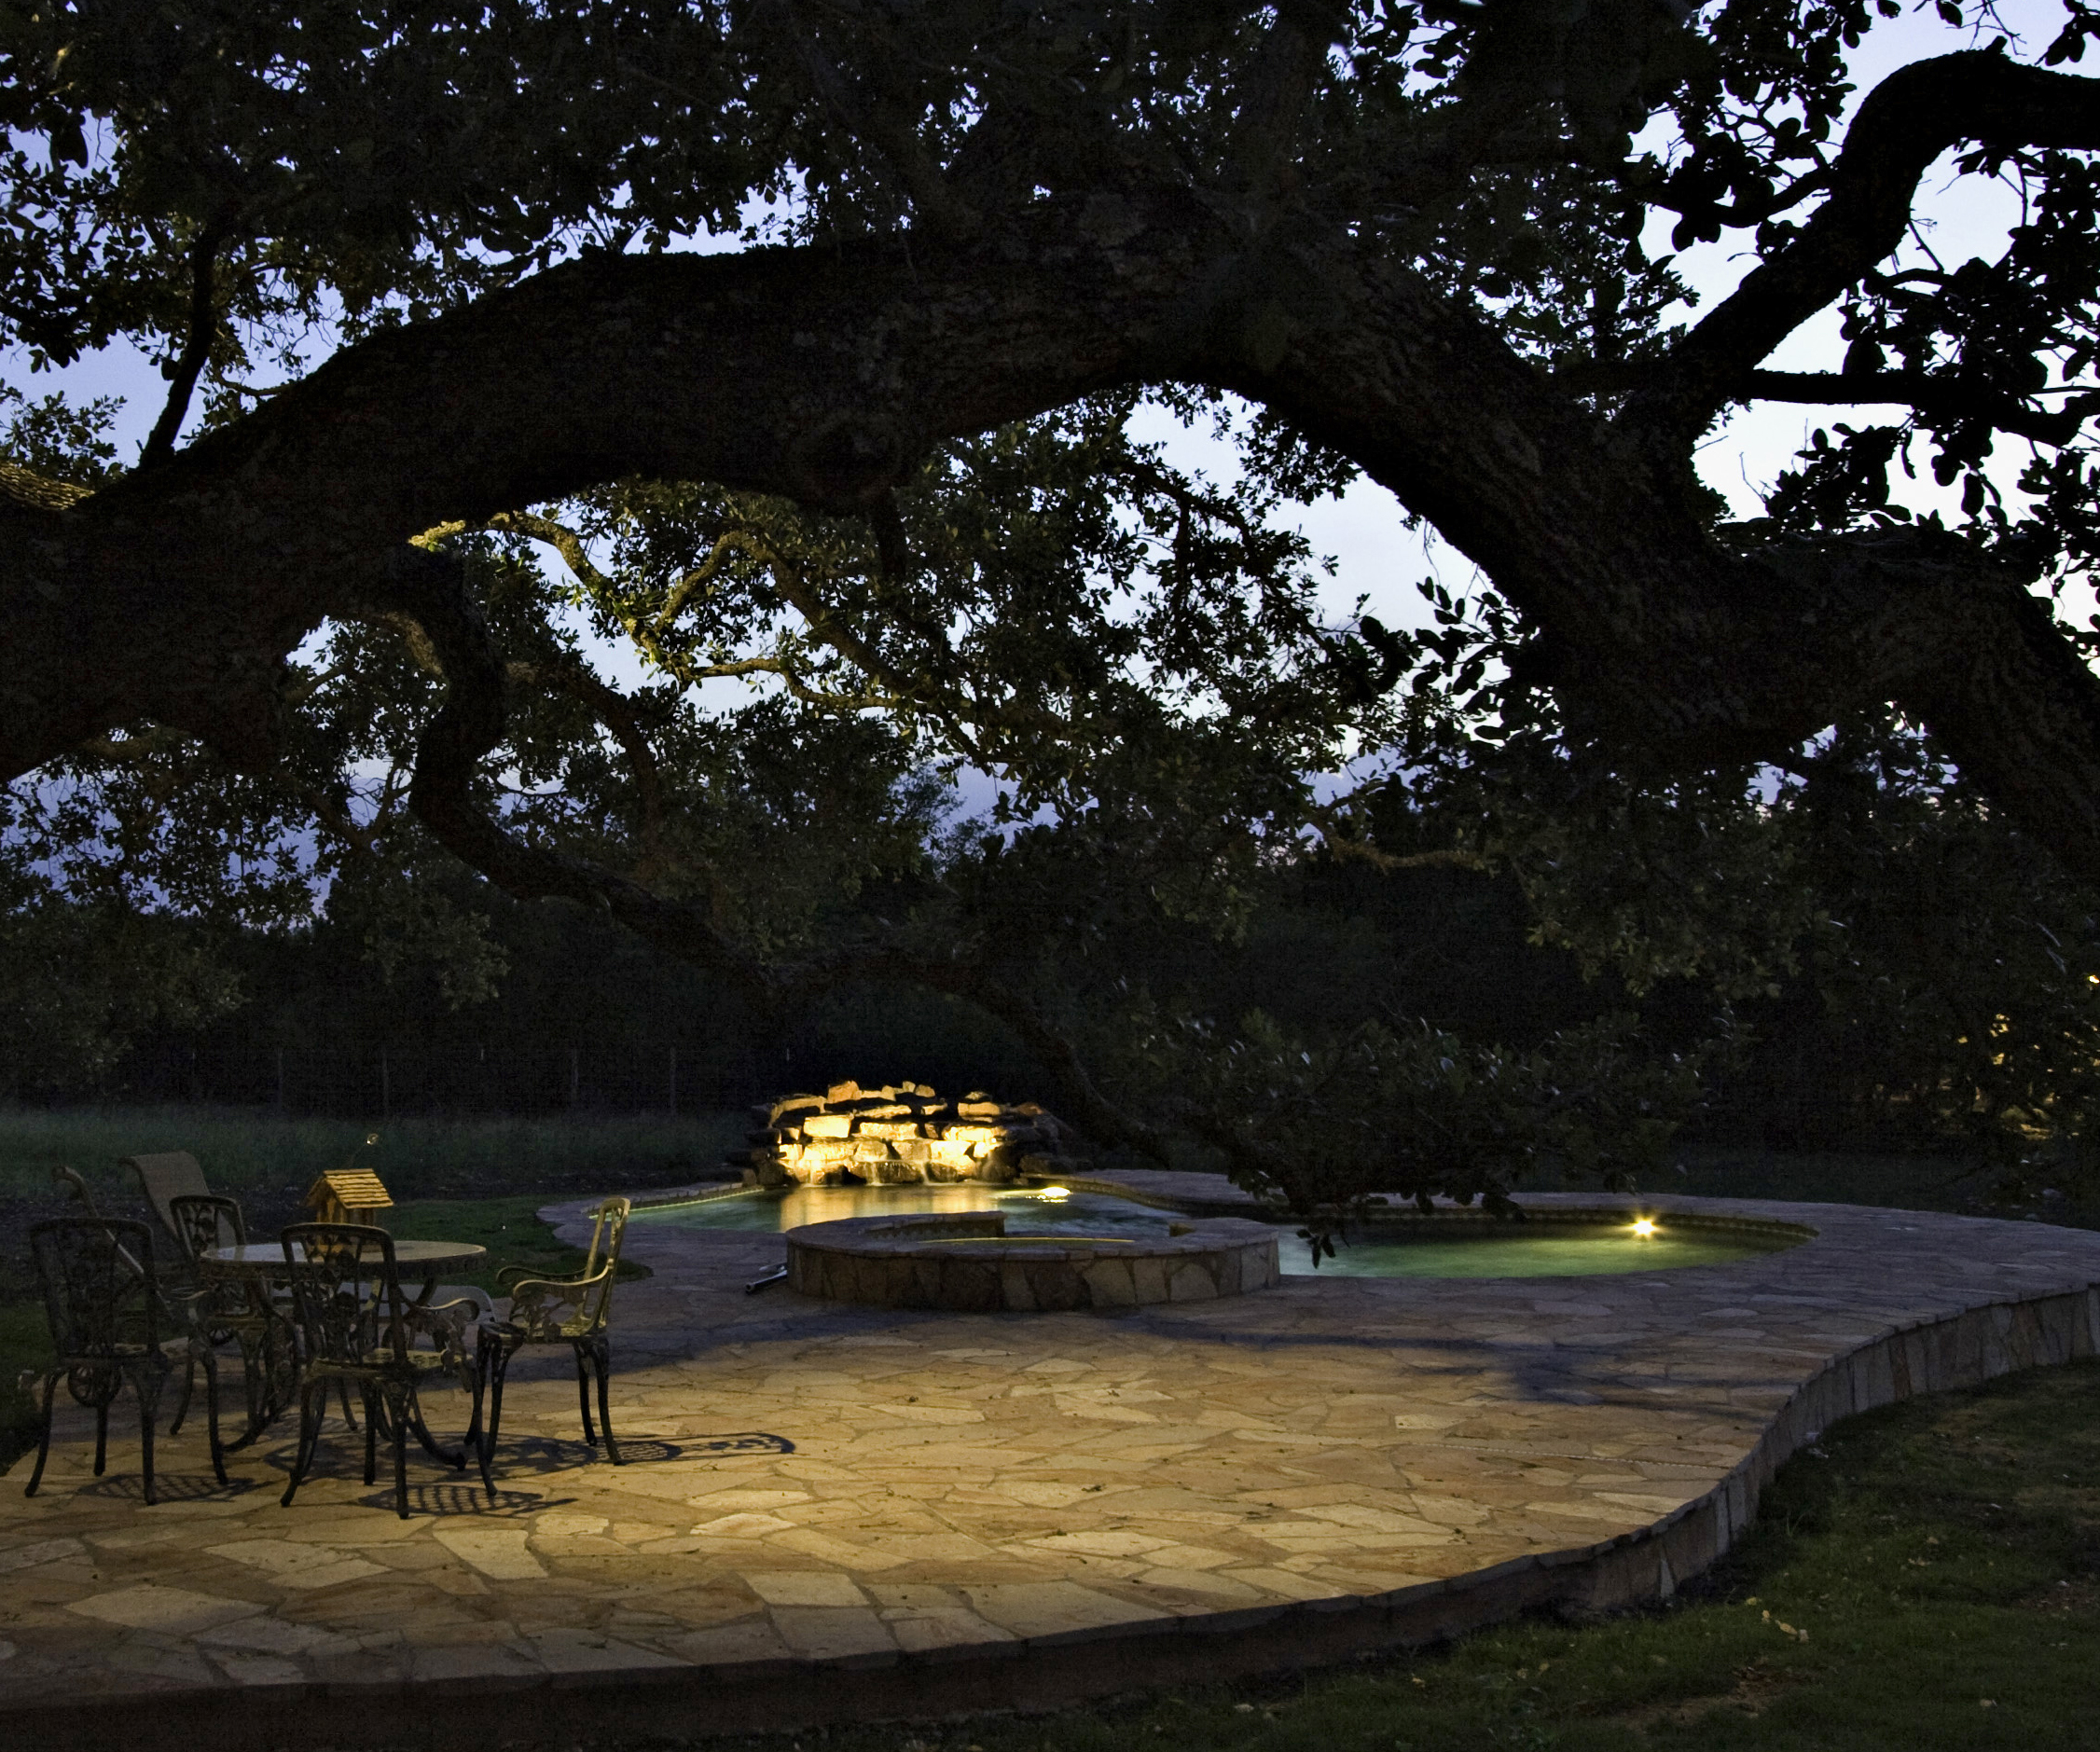 Columbus outdoor lighting techniques for unique spaces outdoor installing lights in trees can give the area a safe and enchanting feel aloadofball Image collections